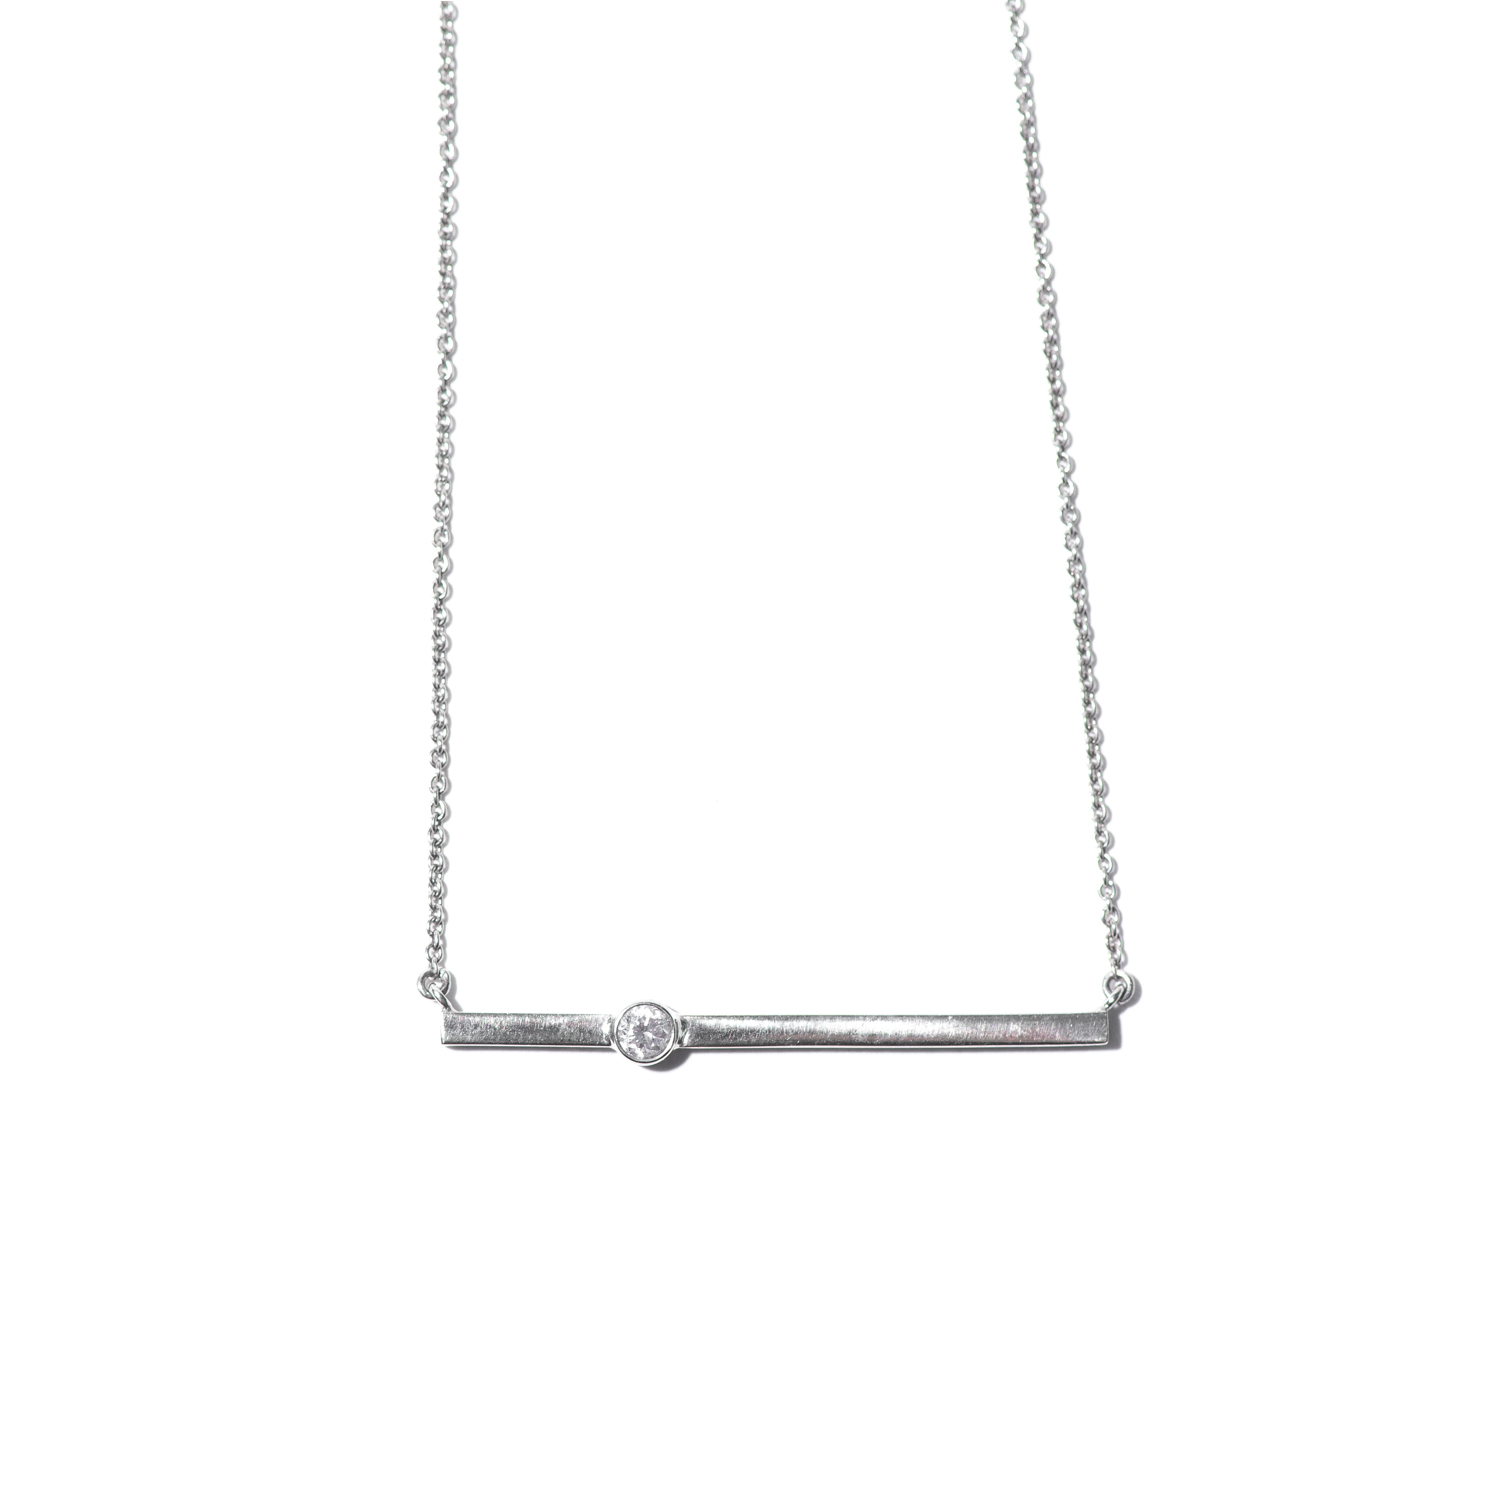 Design Eighteen. - White Gold Bar Necklace with Diamond Detail